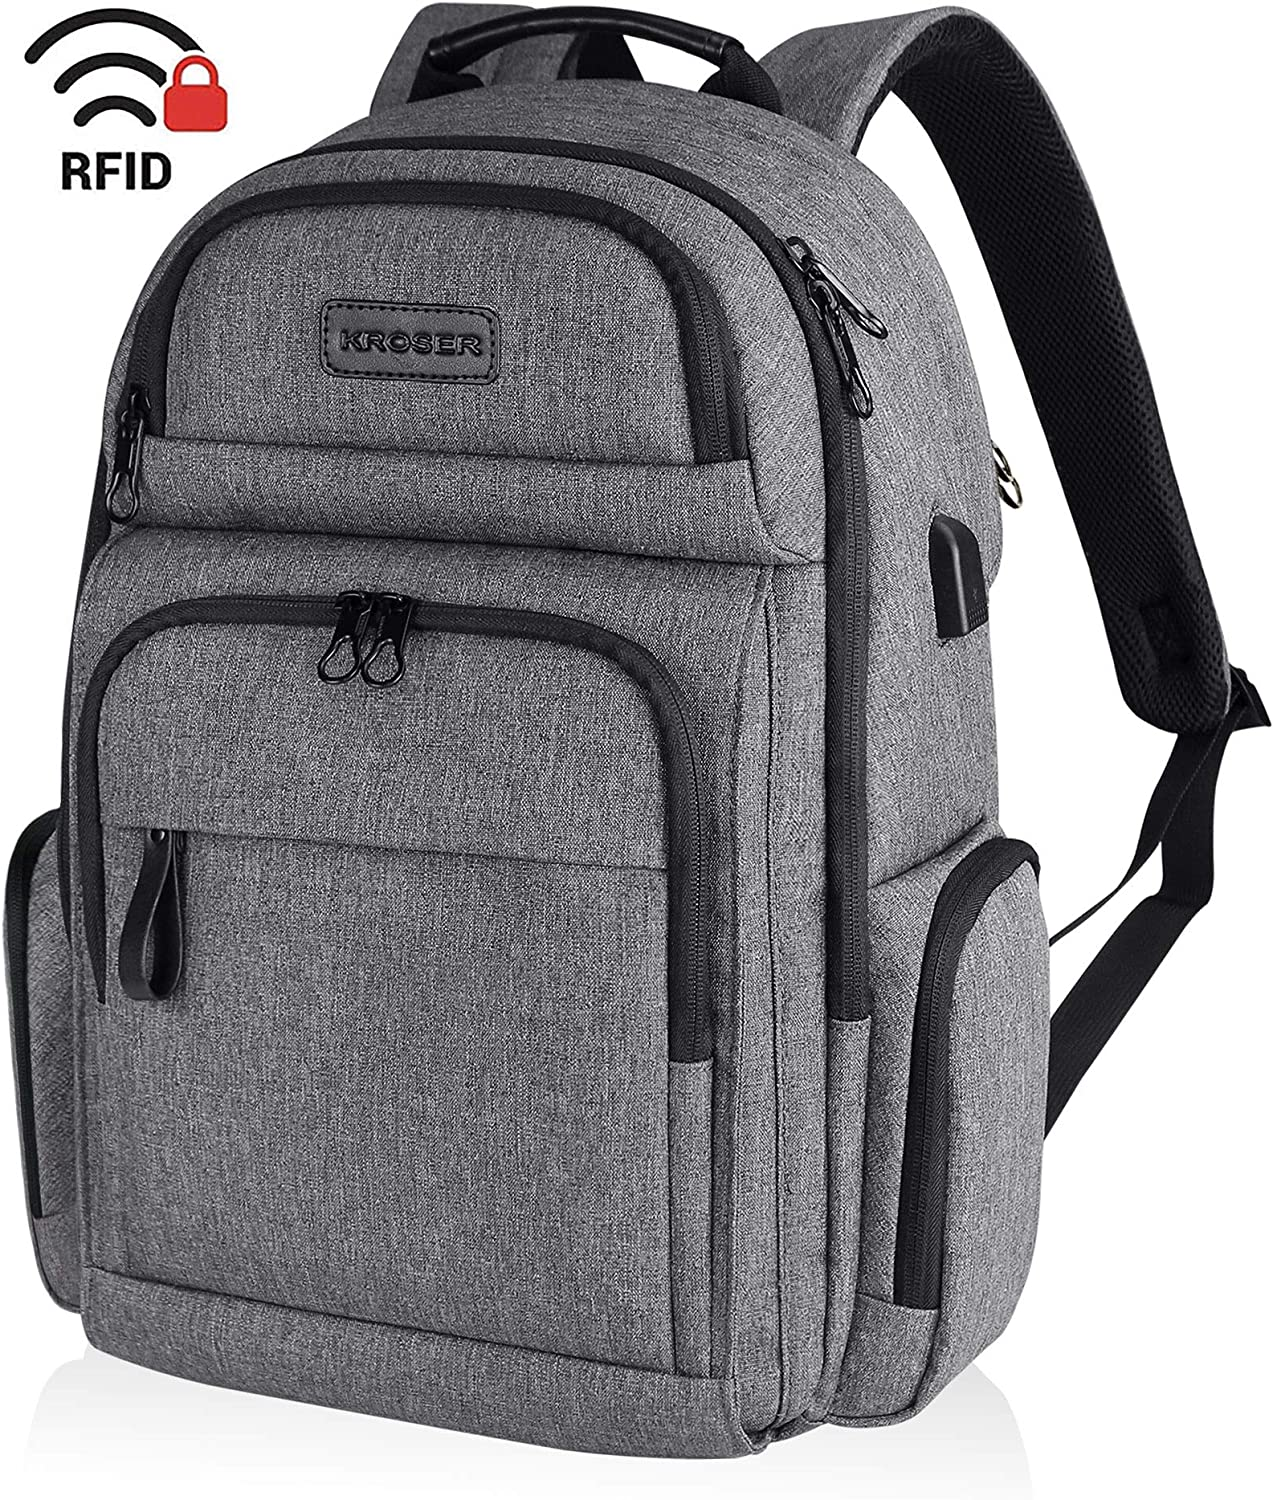 KROSER Travel Laptop Backpack Stylish 15.6 Inch Computer Backpack with Hard Shell Saferoom Water-Repellent Sturdy School Daypack with RFID Pockets for Work/Business/College/Men/Women-Grey